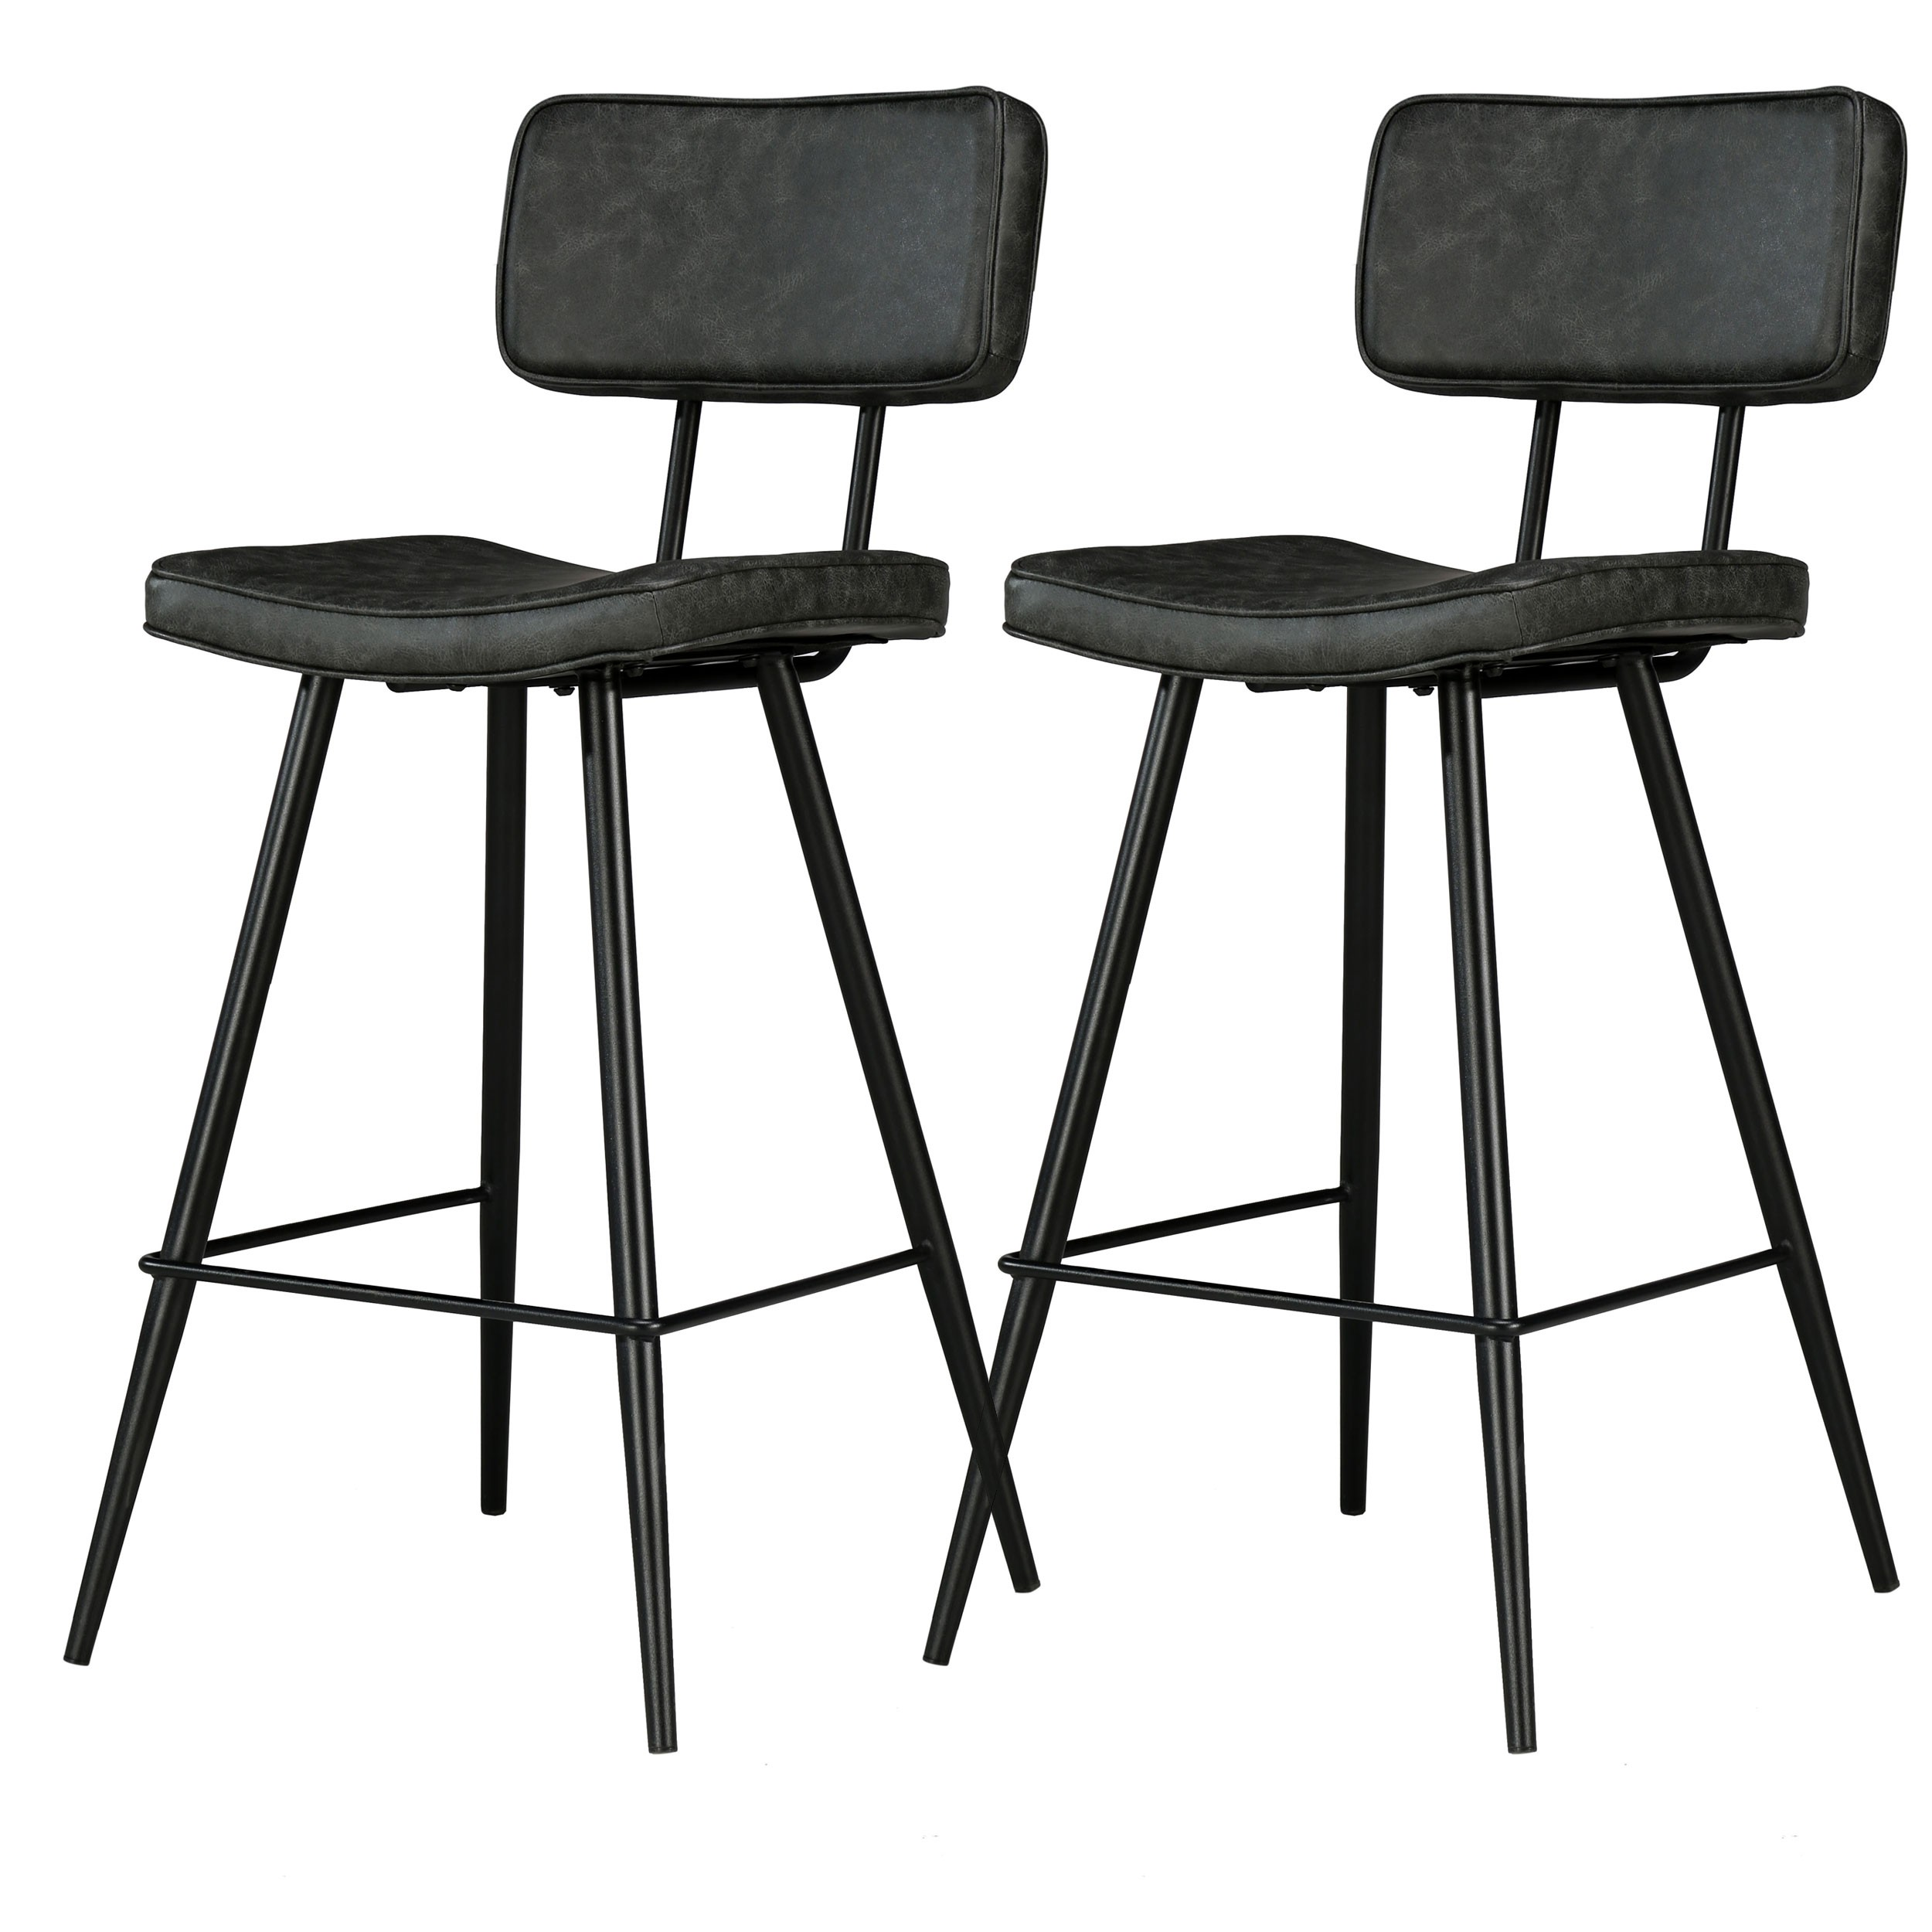 Chaises de bar Texas noires (lot de 2)